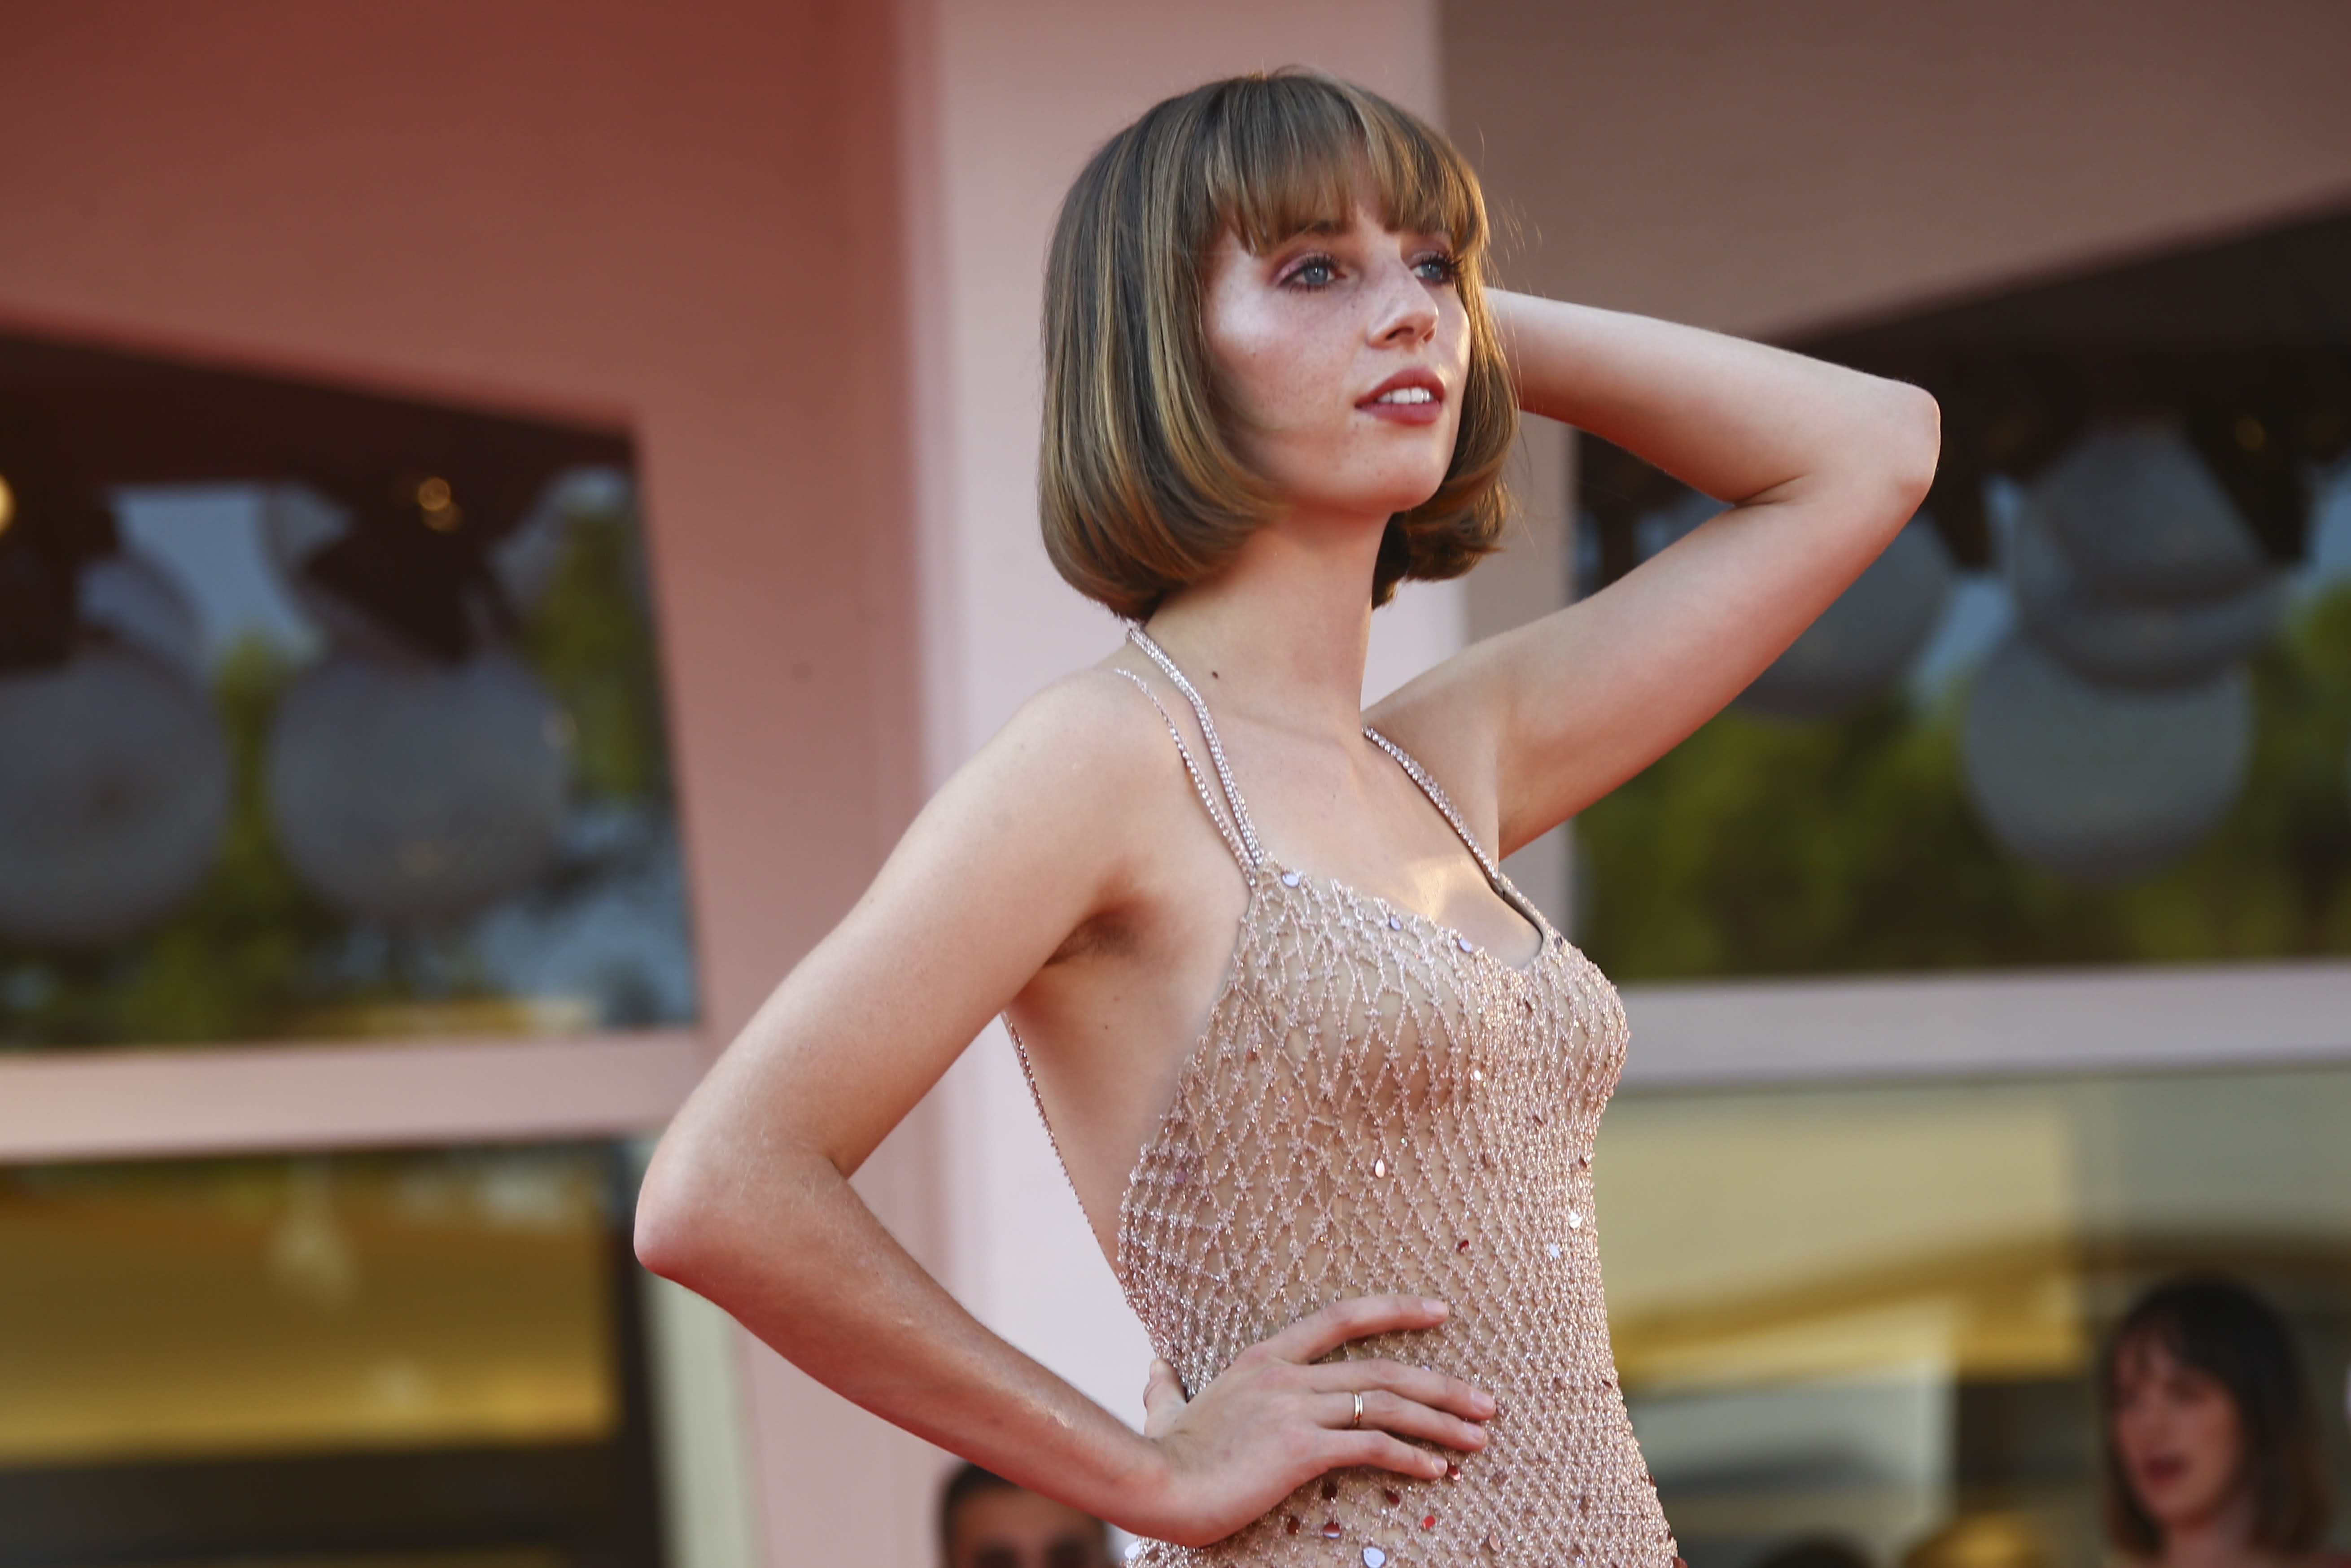 Actress Maya Hawke poses for photographers upon arrival at the premiere for the film 'Mainstream' during the 77th edition of the Venice Film Festival in Venice, Italy, Saturday, Sept. 5, 2020. (Photo by Joel C Ryan/Invision/AP)